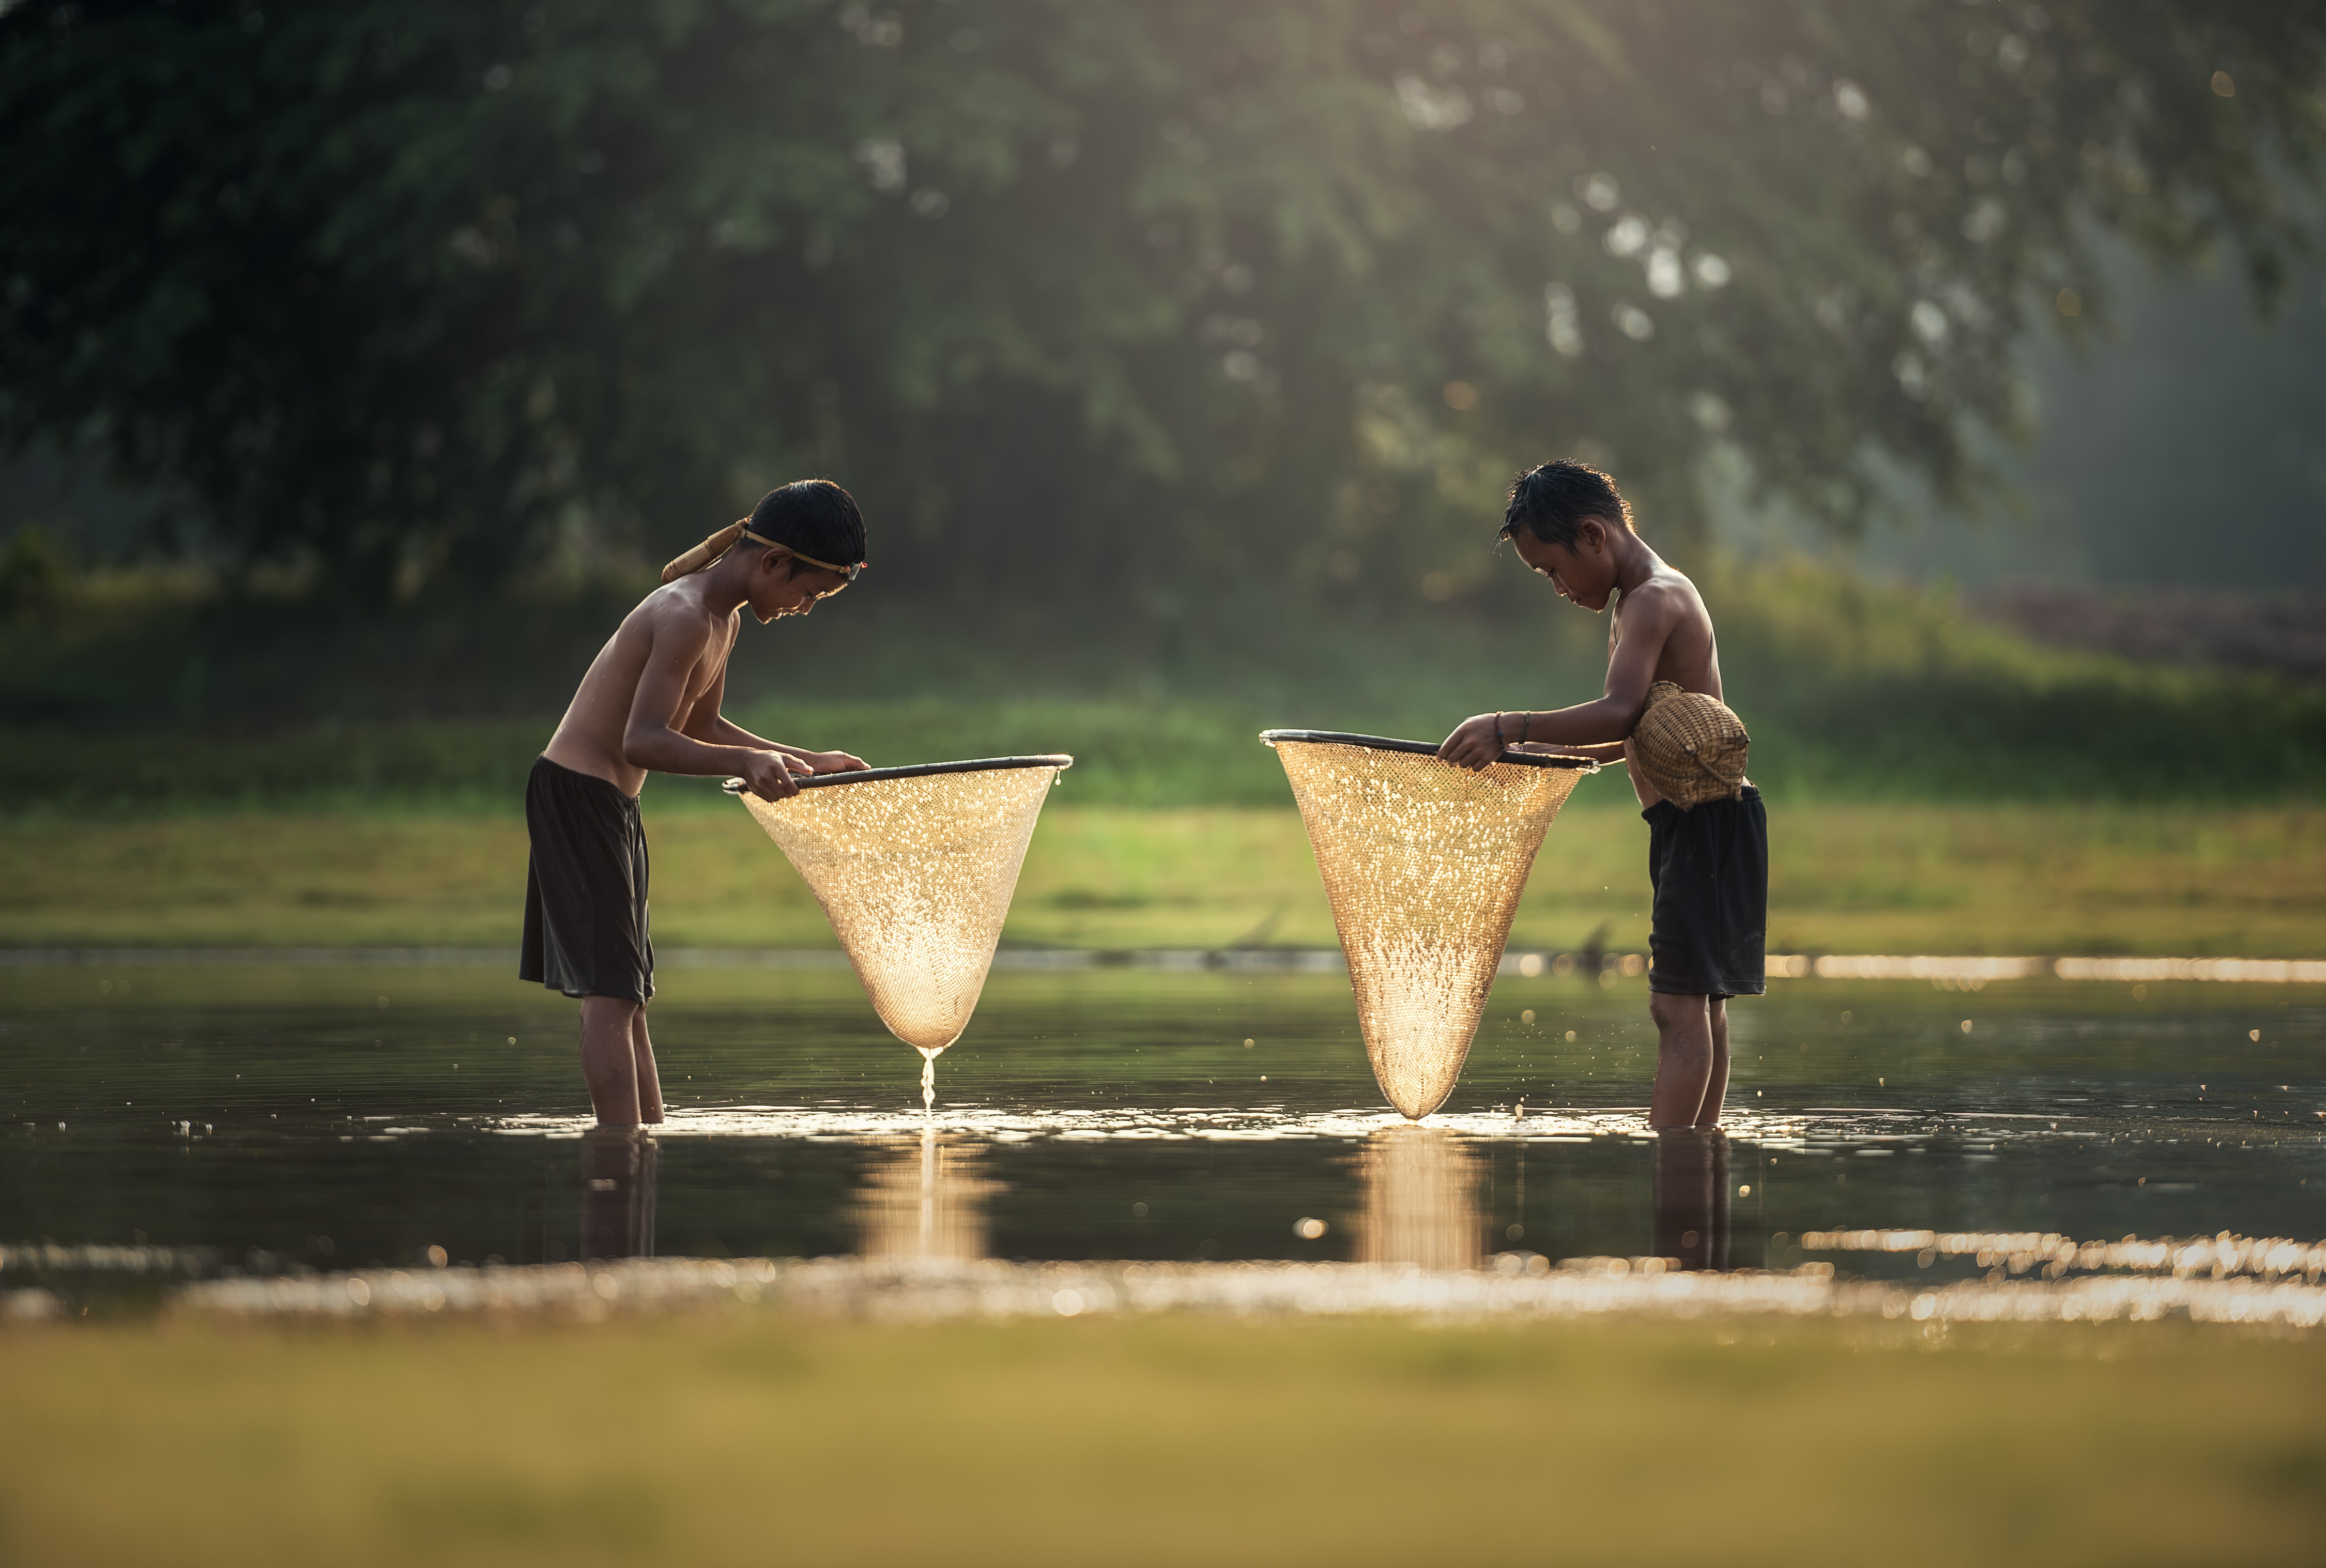 Boys fishing in the river, Cambodia - sasint